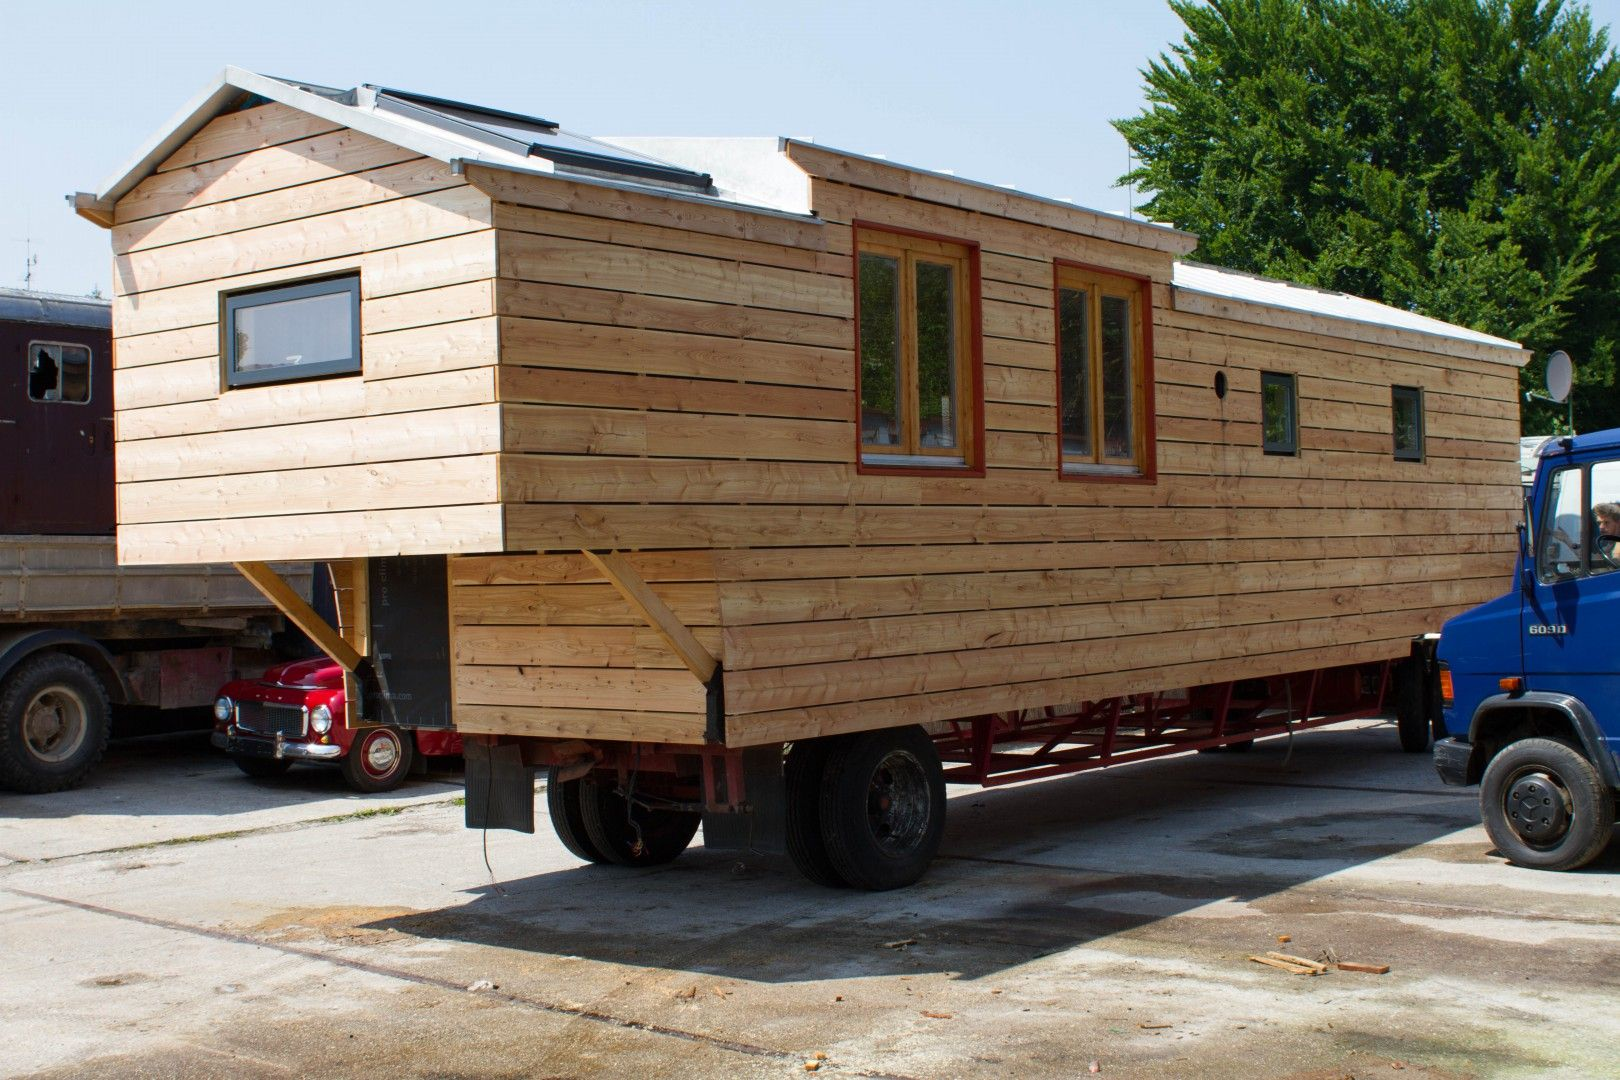 holz bau wagen referenz 3 wagen tiny apartments house und tiny house. Black Bedroom Furniture Sets. Home Design Ideas